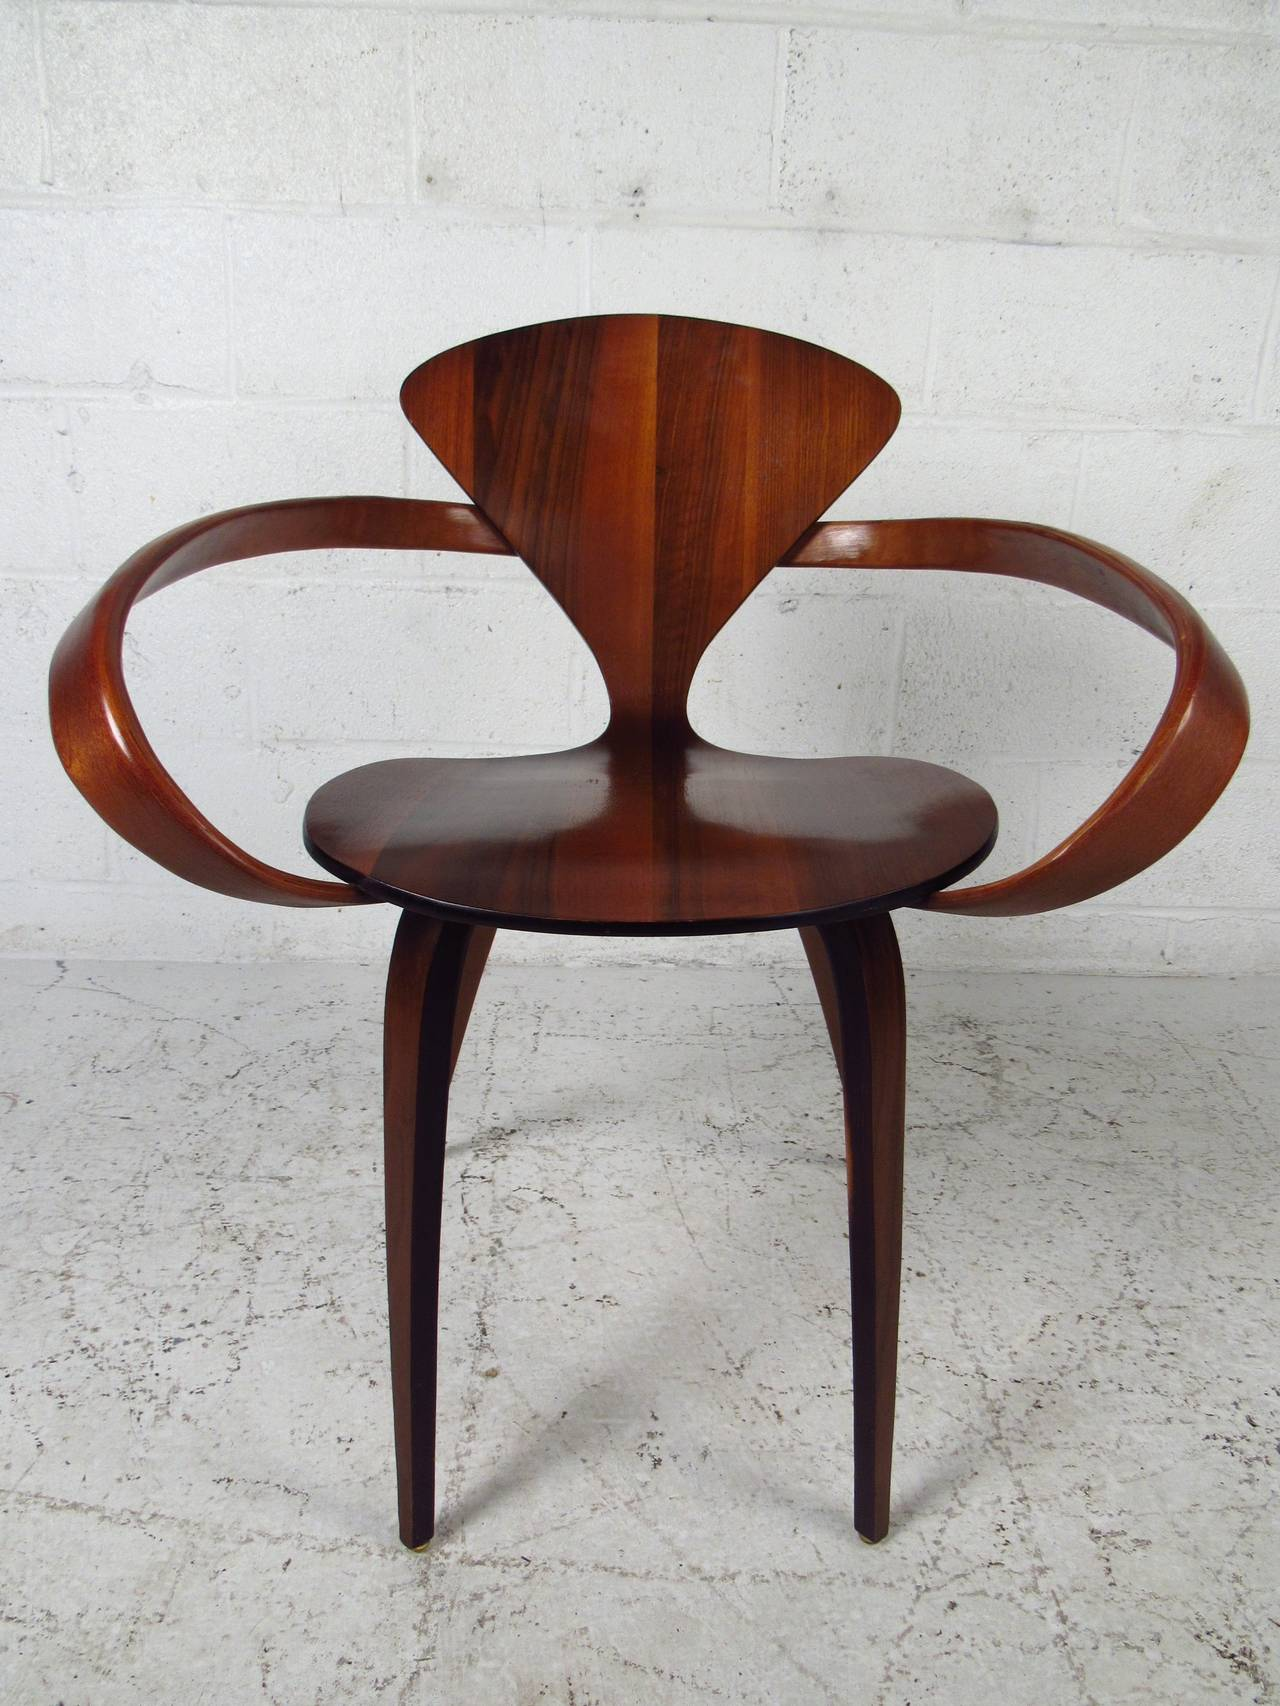 Amazing This Unique Cherner Bentwood Chair Is Widely Praised For Itu0027s Innovative  Sculptural Design. Tapered Legs